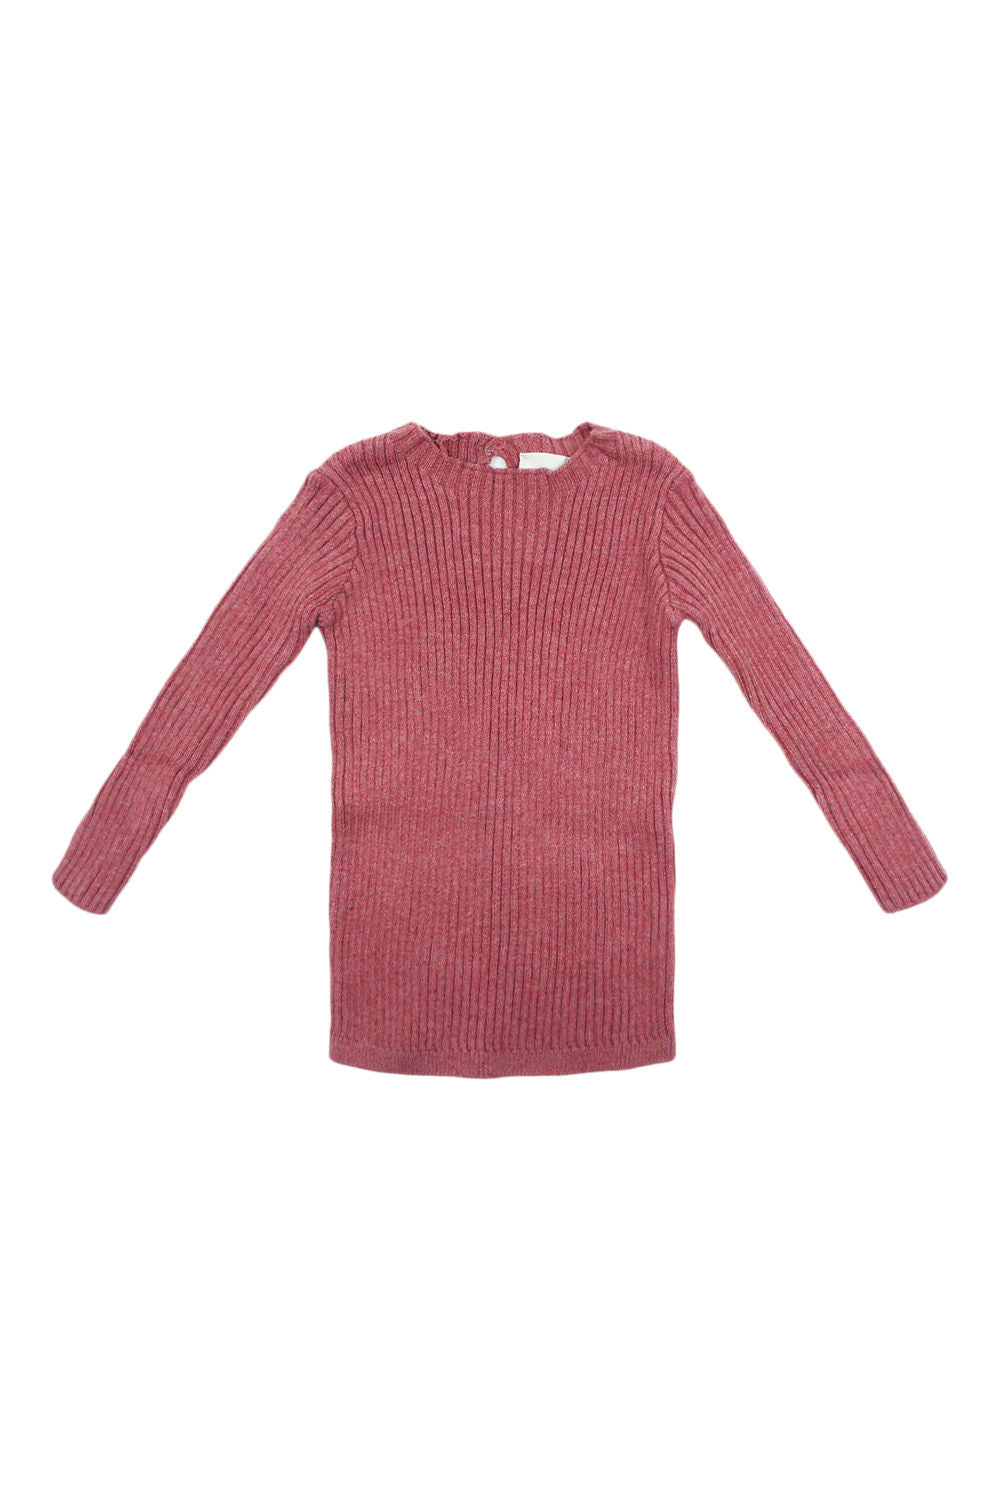 Analogie Mauve Long Sleeve Knit Sweater